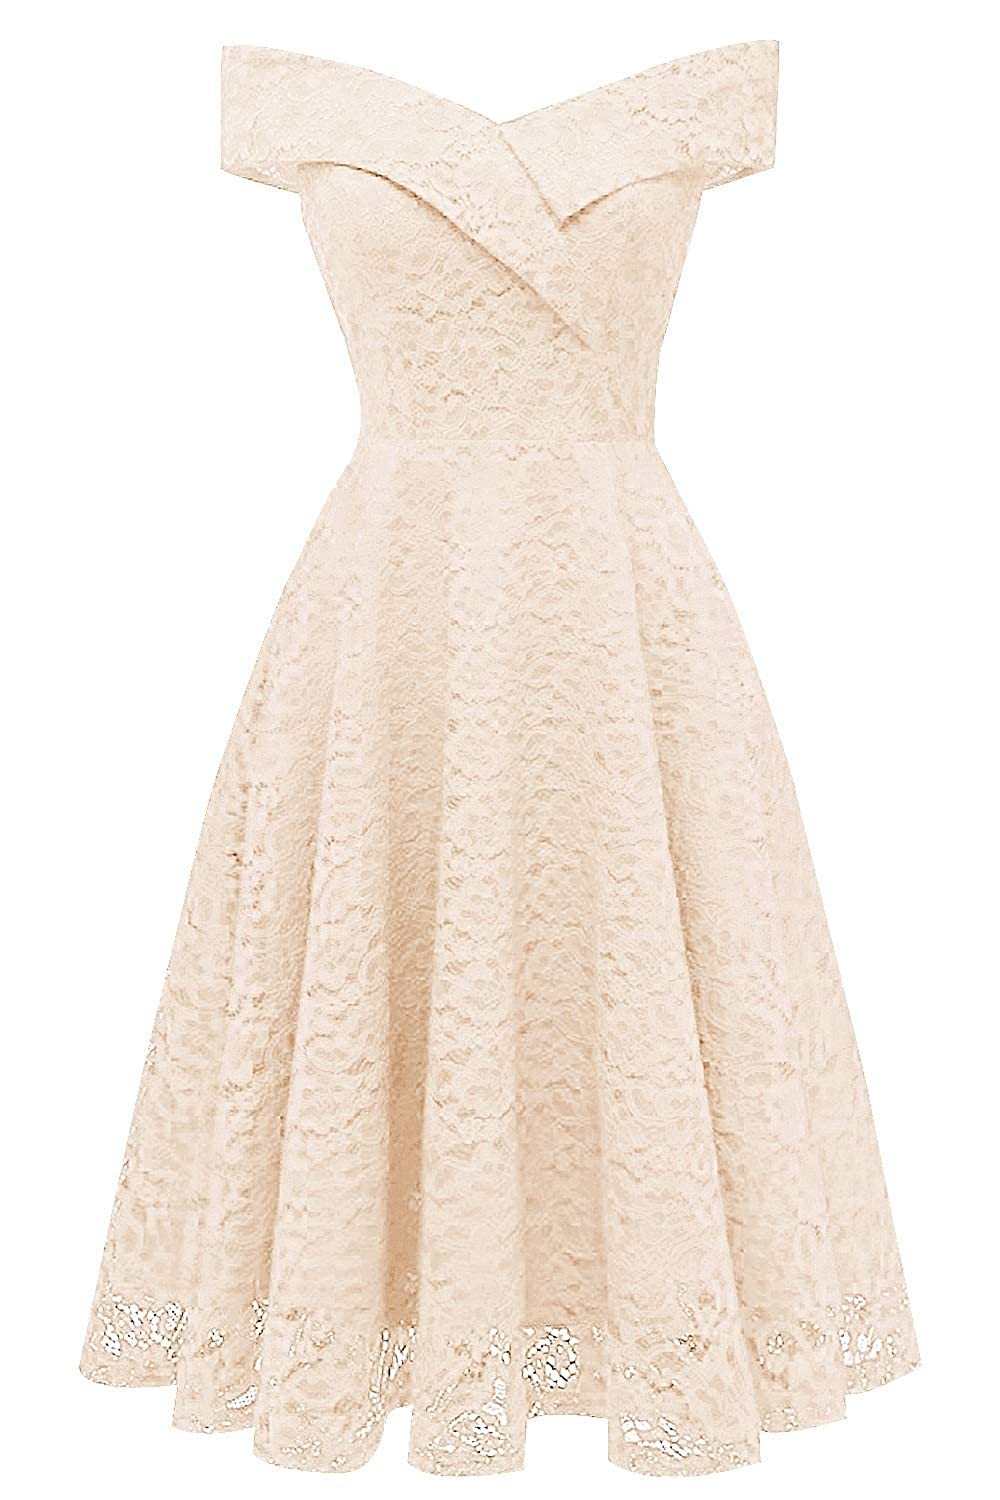 Champagne MorySong Women's Lace Off The Shoulder Knee Length Cocktail Homecoming Dress